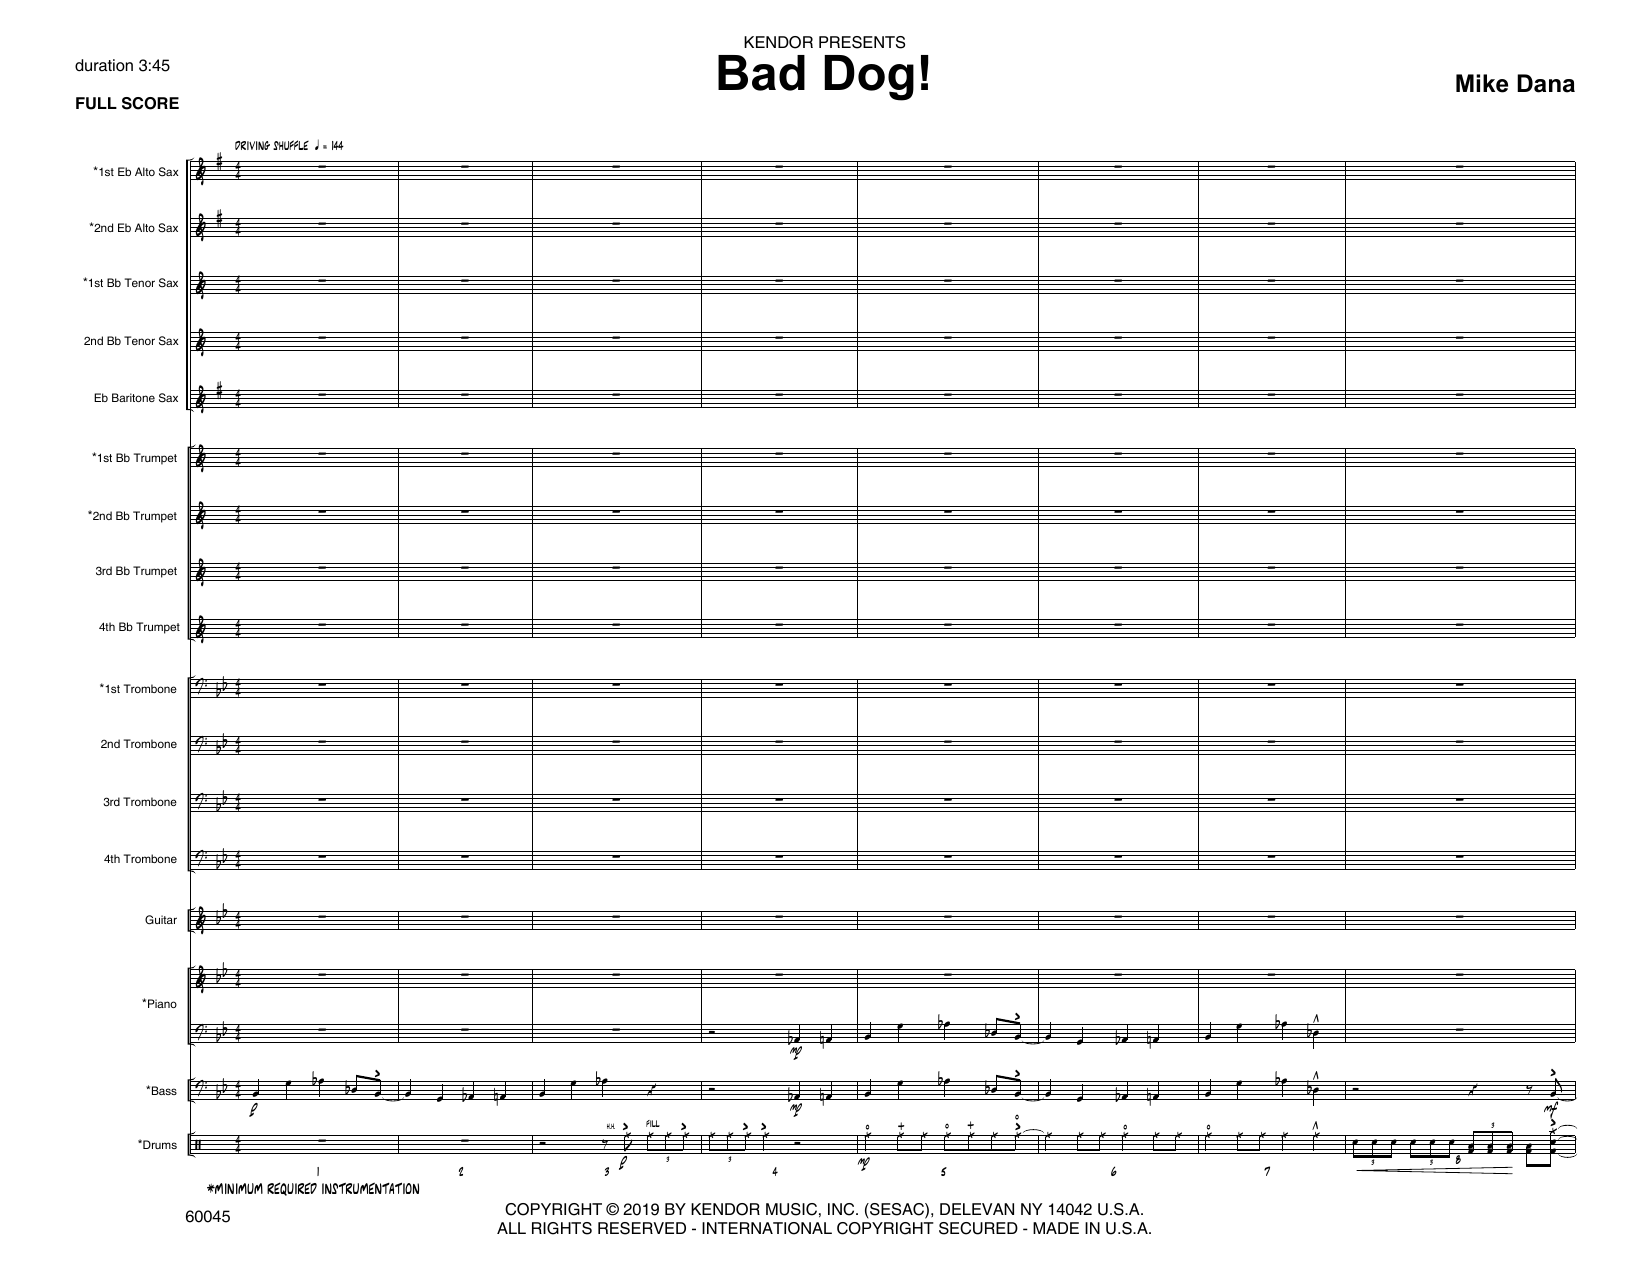 Mike Dana Bad Dog! - Full Score sheet music notes and chords. Download Printable PDF.